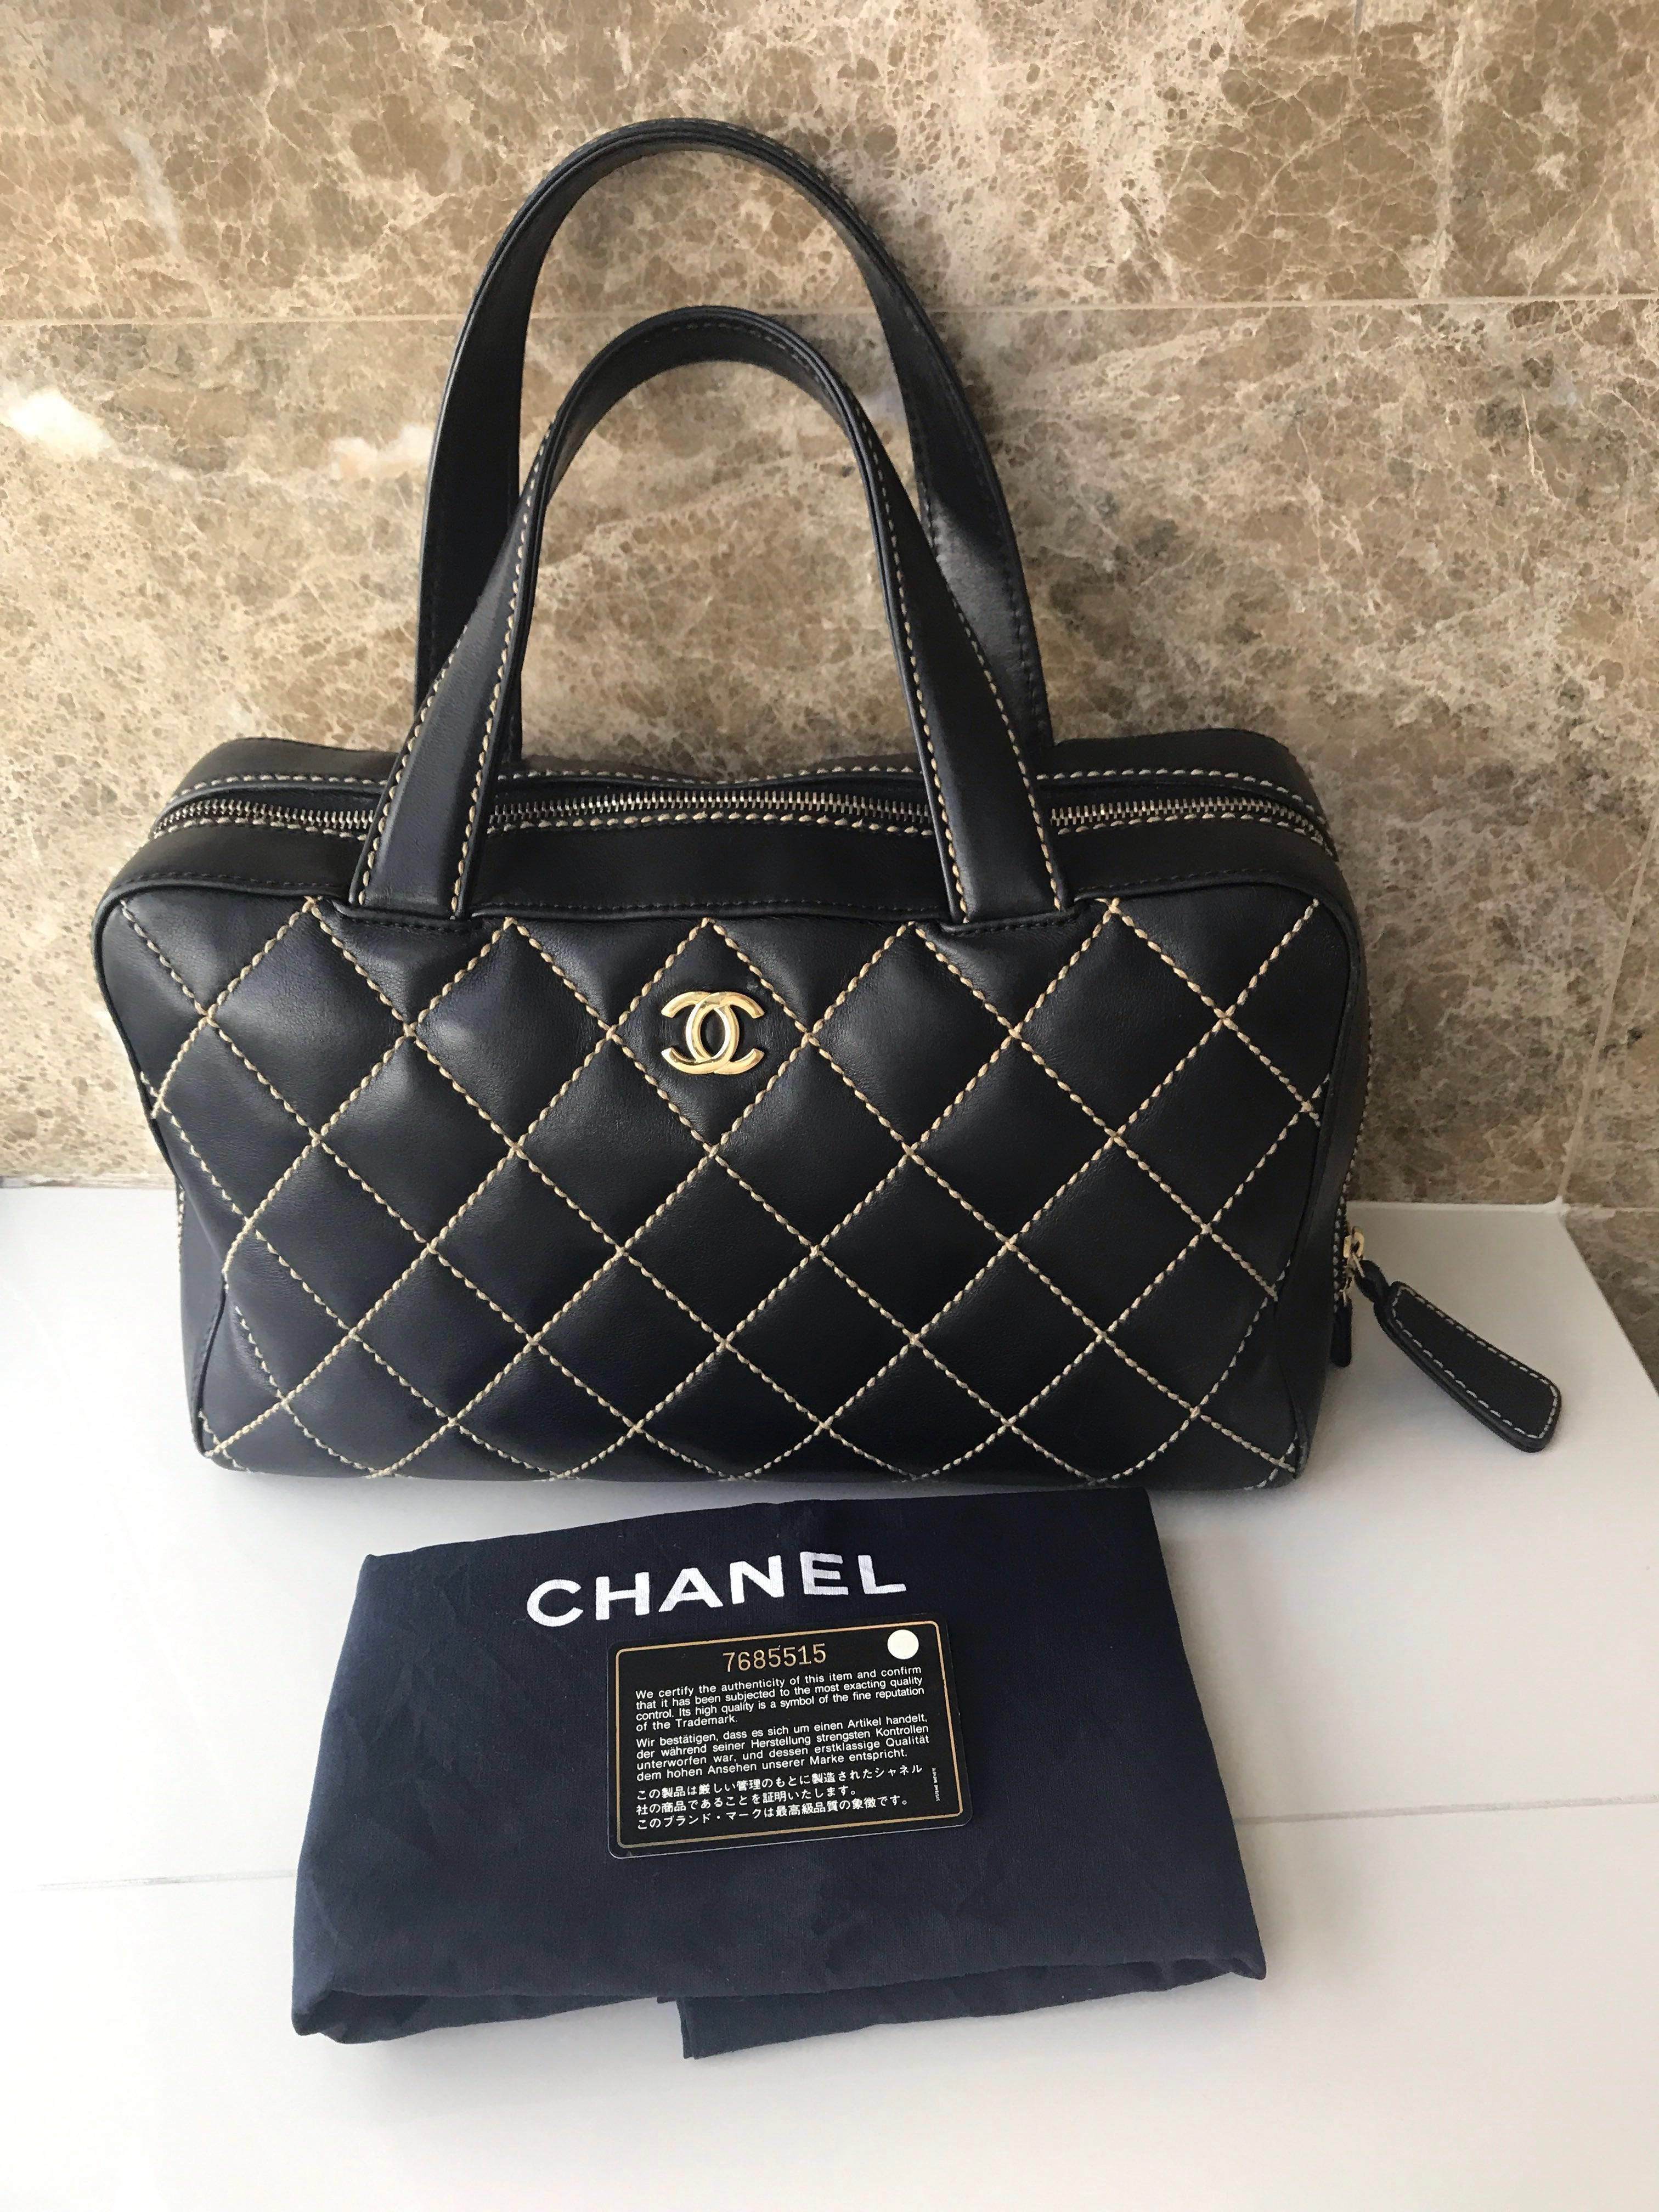 51b212435 100% Authentic Chanel Black Wild Stitch Surpique Tote, Luxury, Bags &  Wallets, Handbags on Carousell